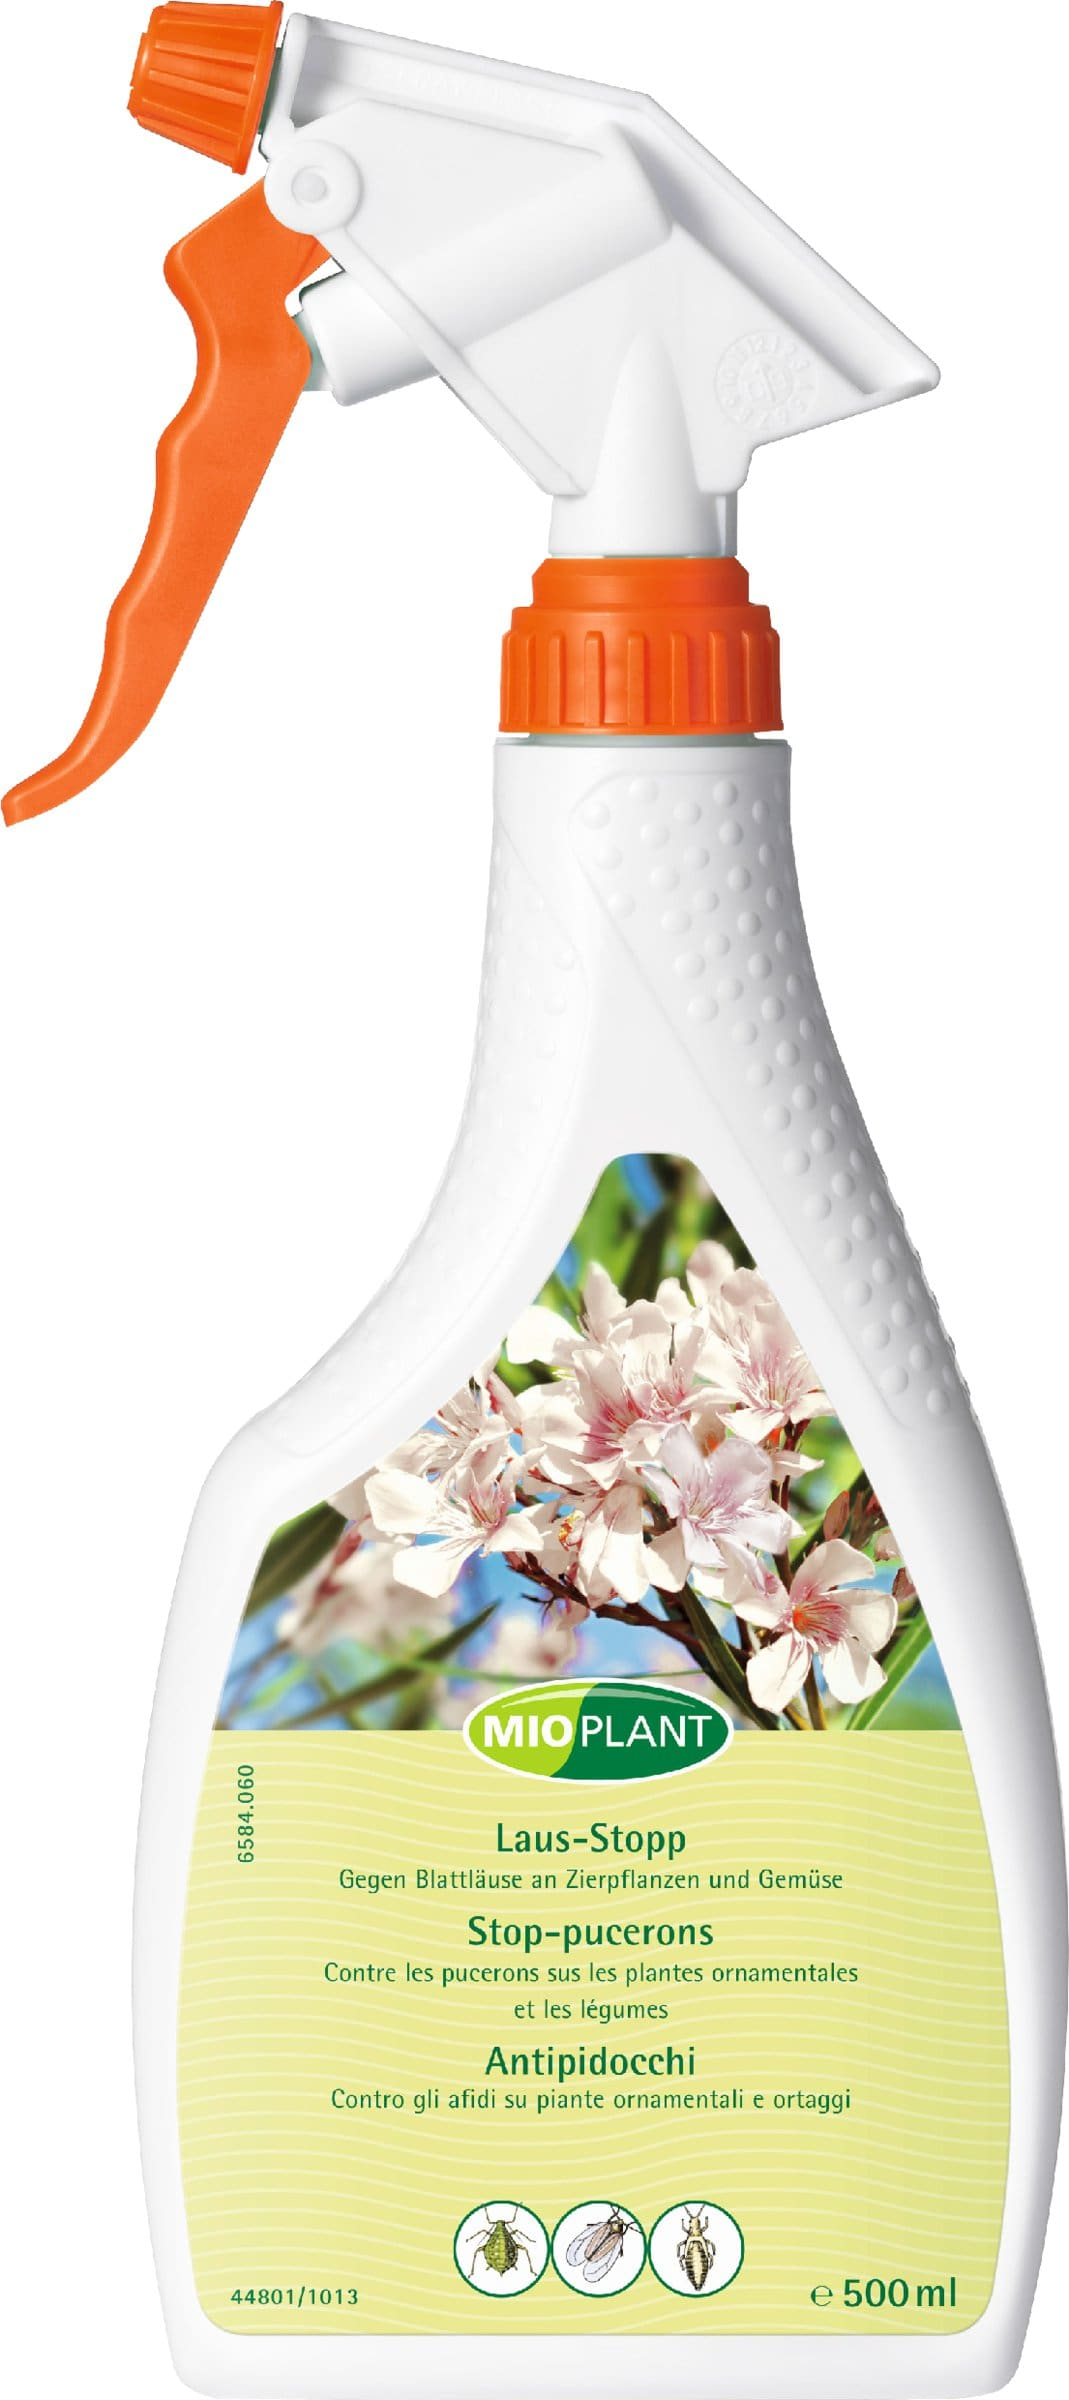 Mioplant Stop-pucerons, 500 ml